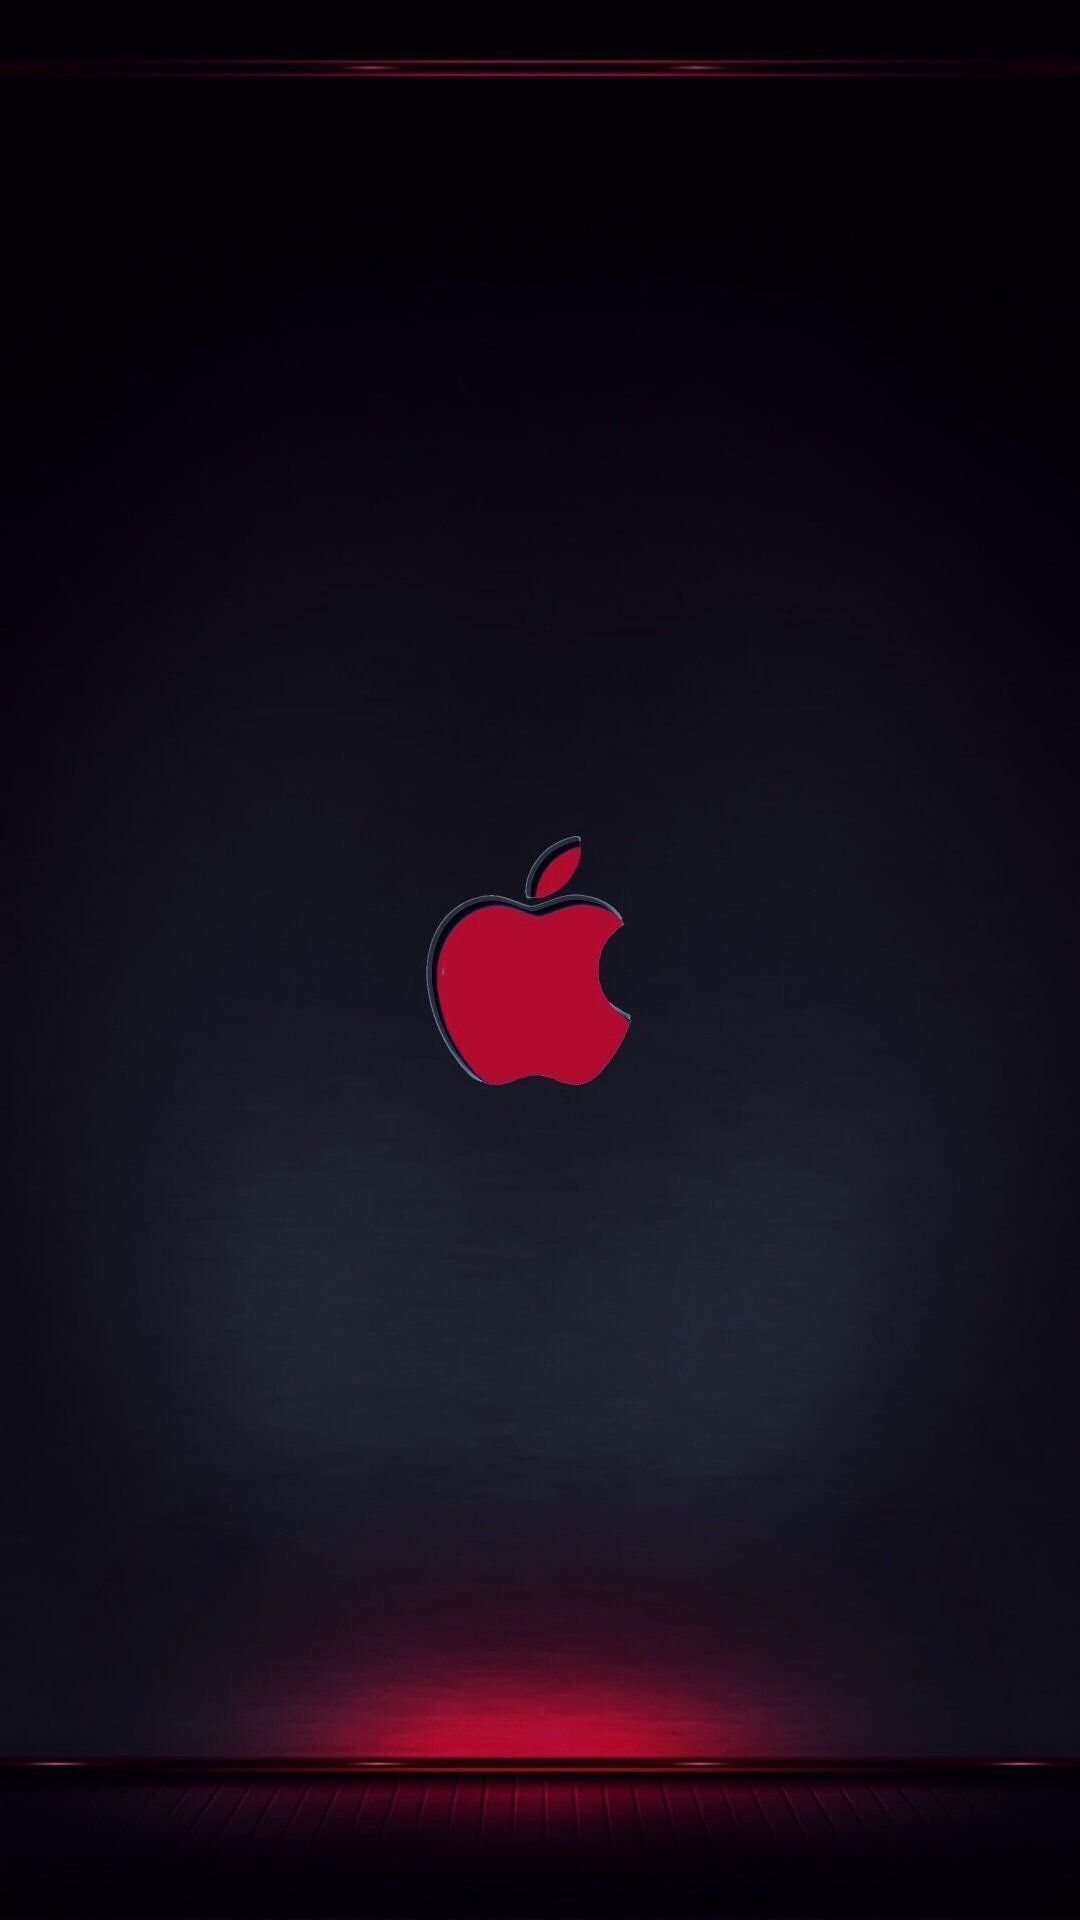 Iphone Xr Wallpaper Apple Logo Di 2020 Wallpaper Iphone